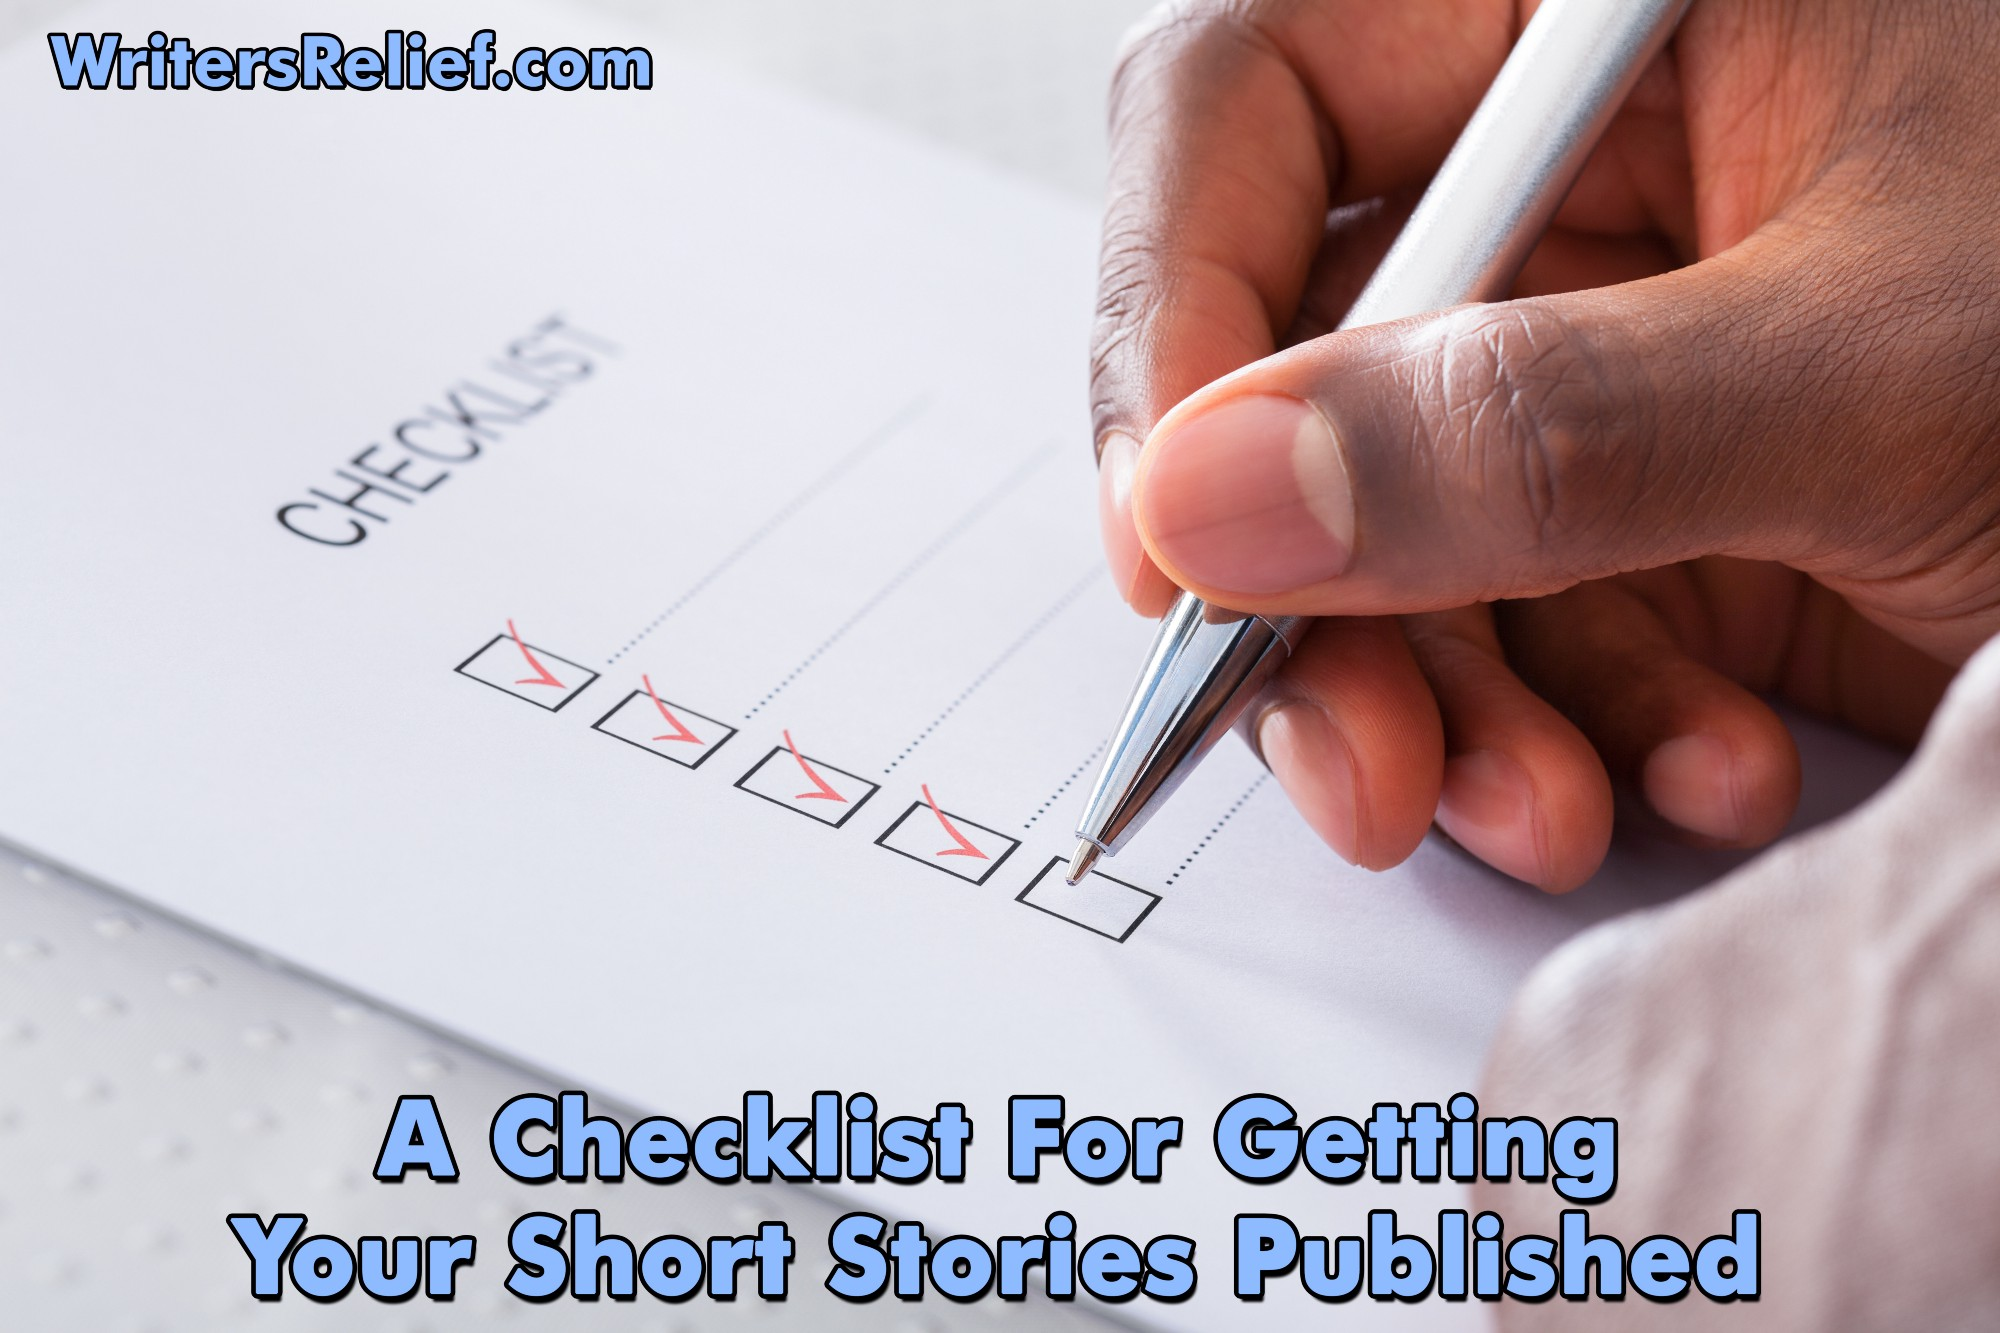 A Checklist For Getting Your Short Stories Published